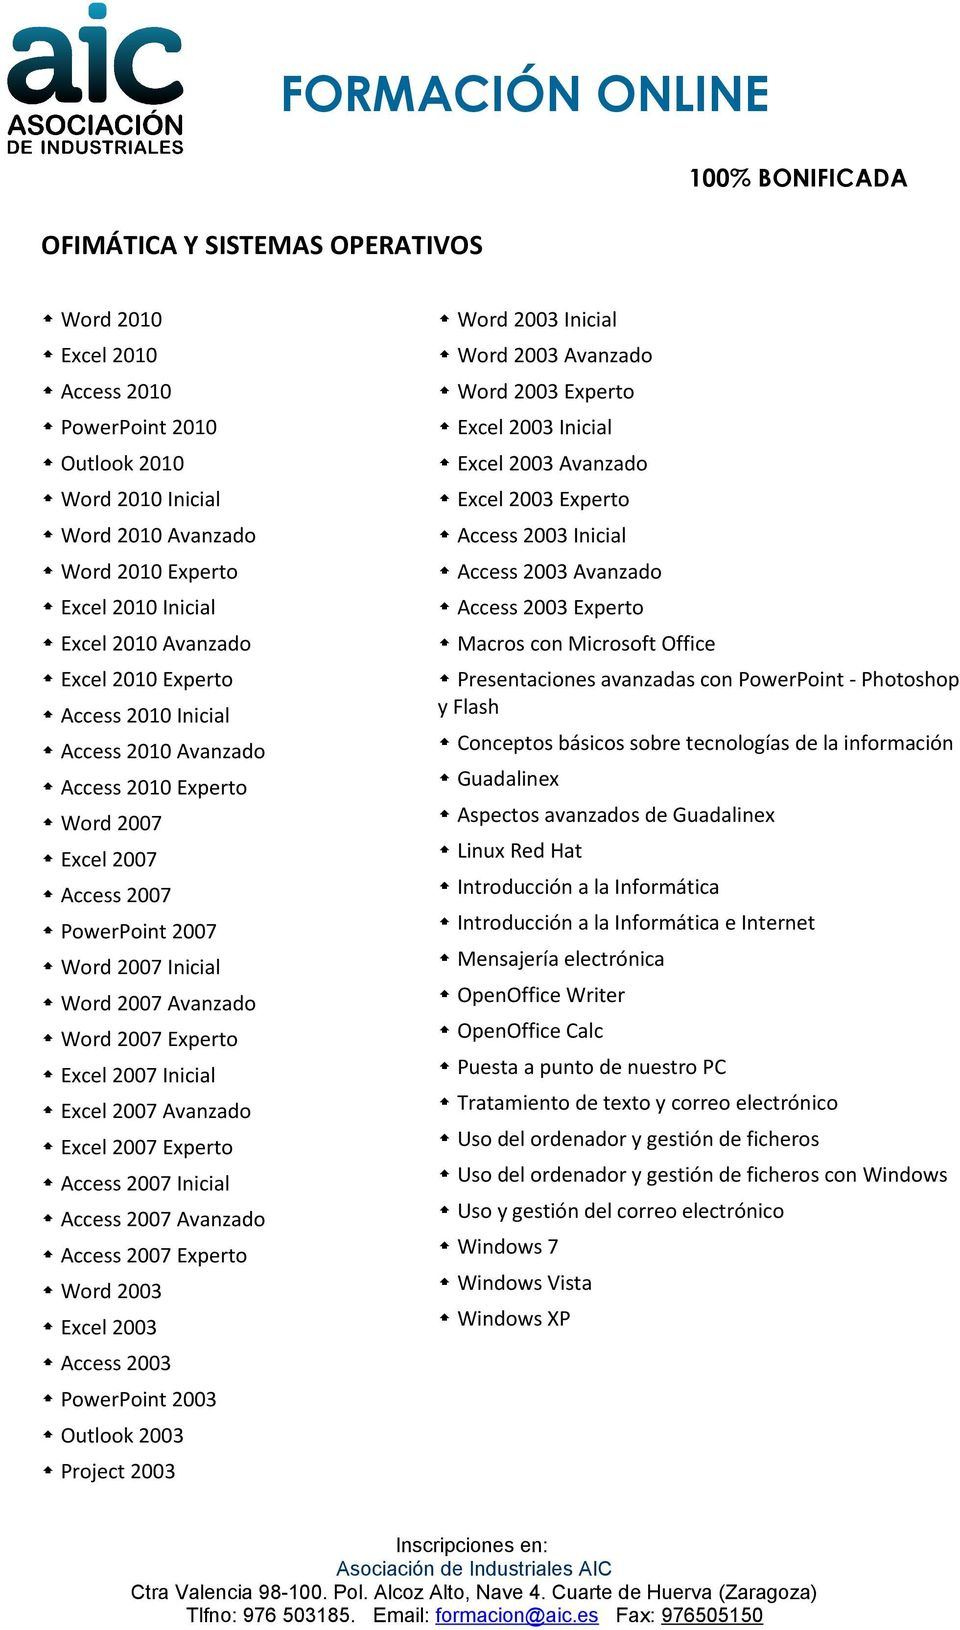 2007 Avanzado Excel 2007 Experto Access 2007 Inicial Access 2007 Avanzado Access 2007 Experto Word 2003 Excel 2003 Access 2003 PowerPoint 2003 Outlook 2003 Project 2003 Word 2003 Inicial Word 2003